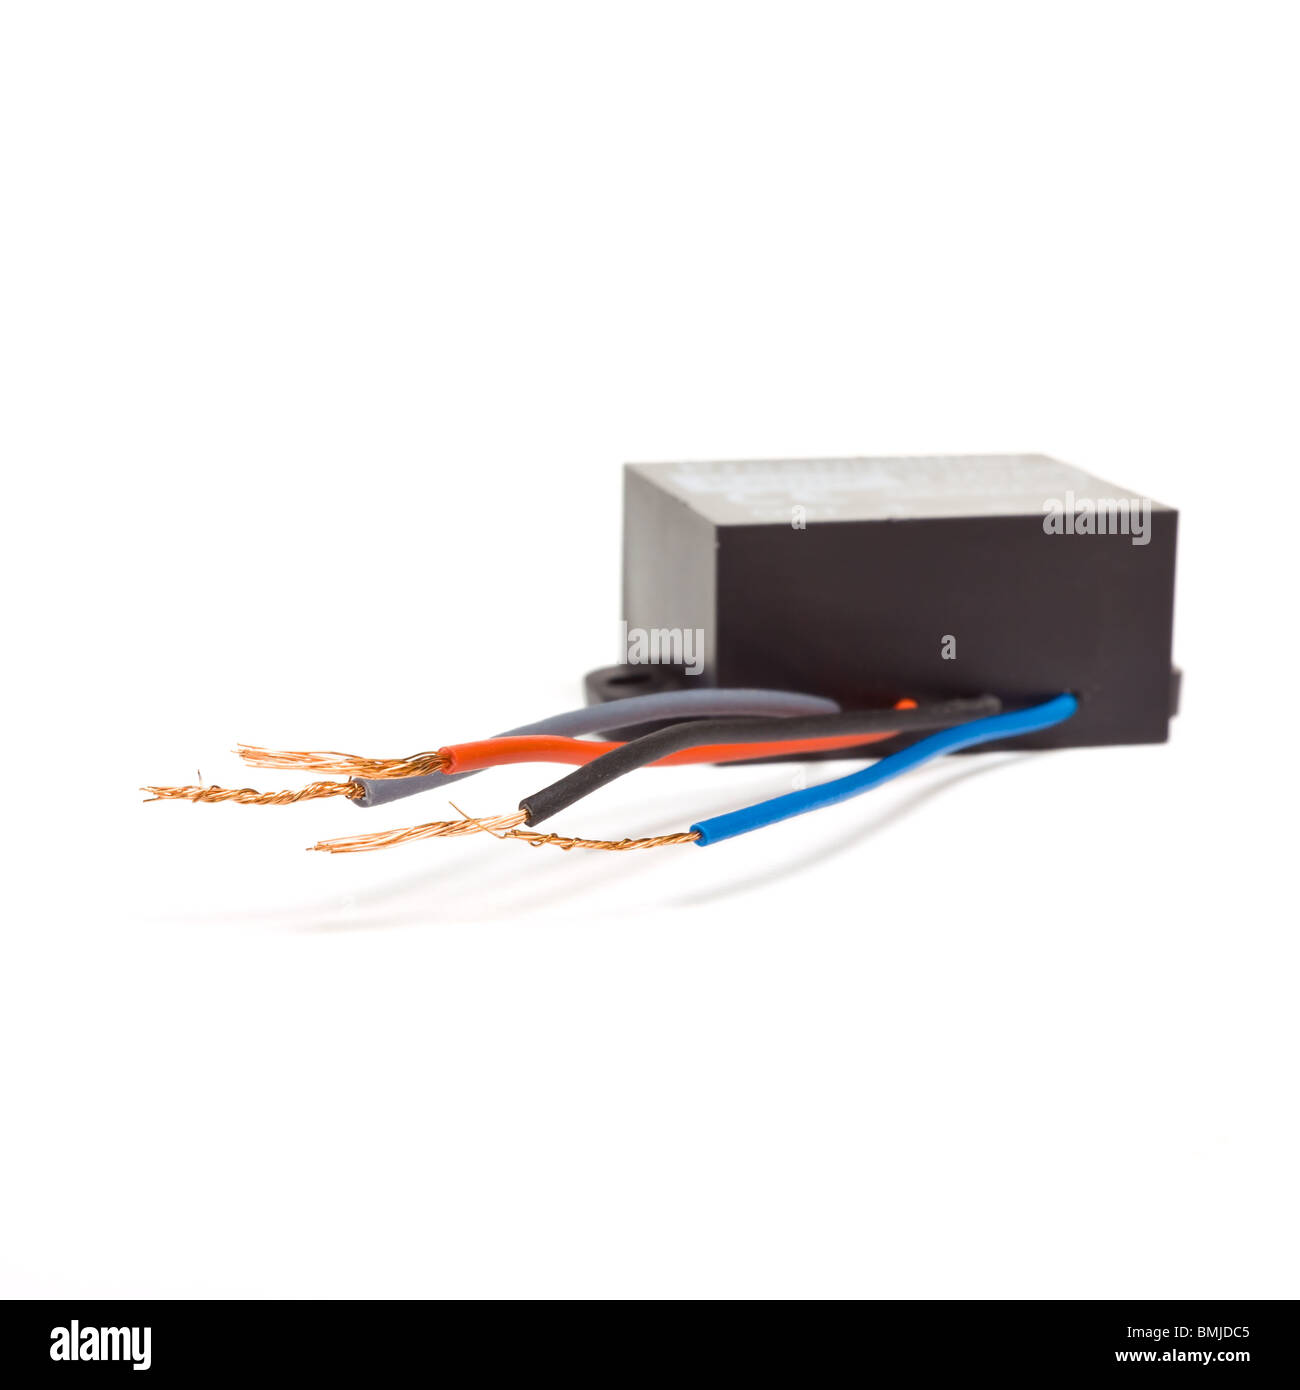 Black Box electronic gizmo with wires isolated against white background. - Stock Image